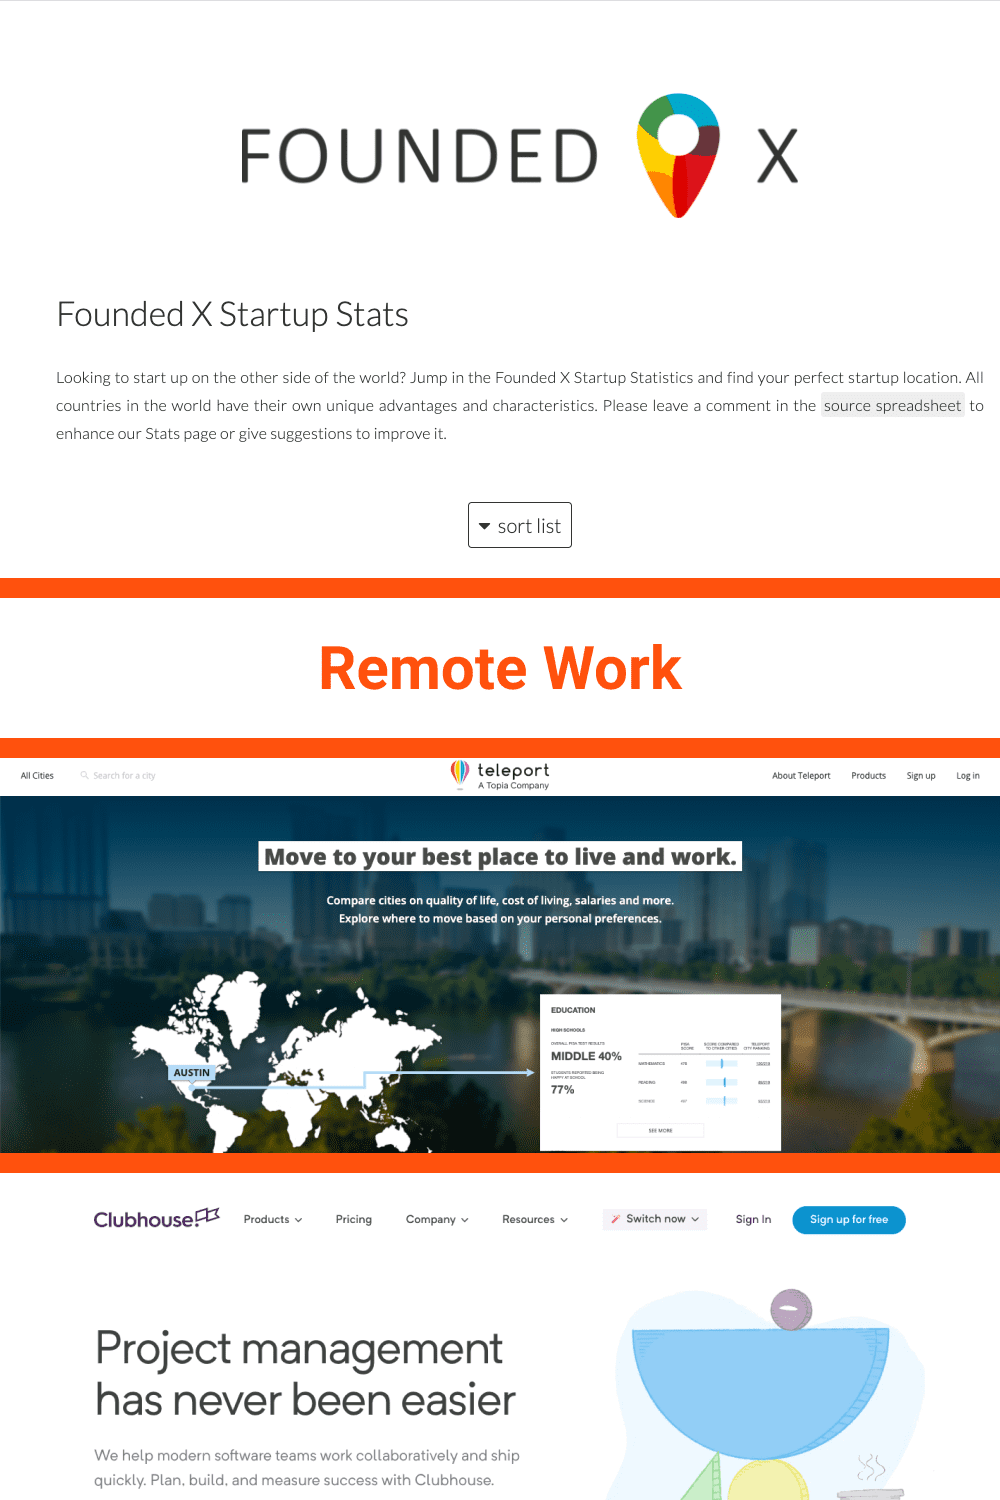 Different options for remote work.